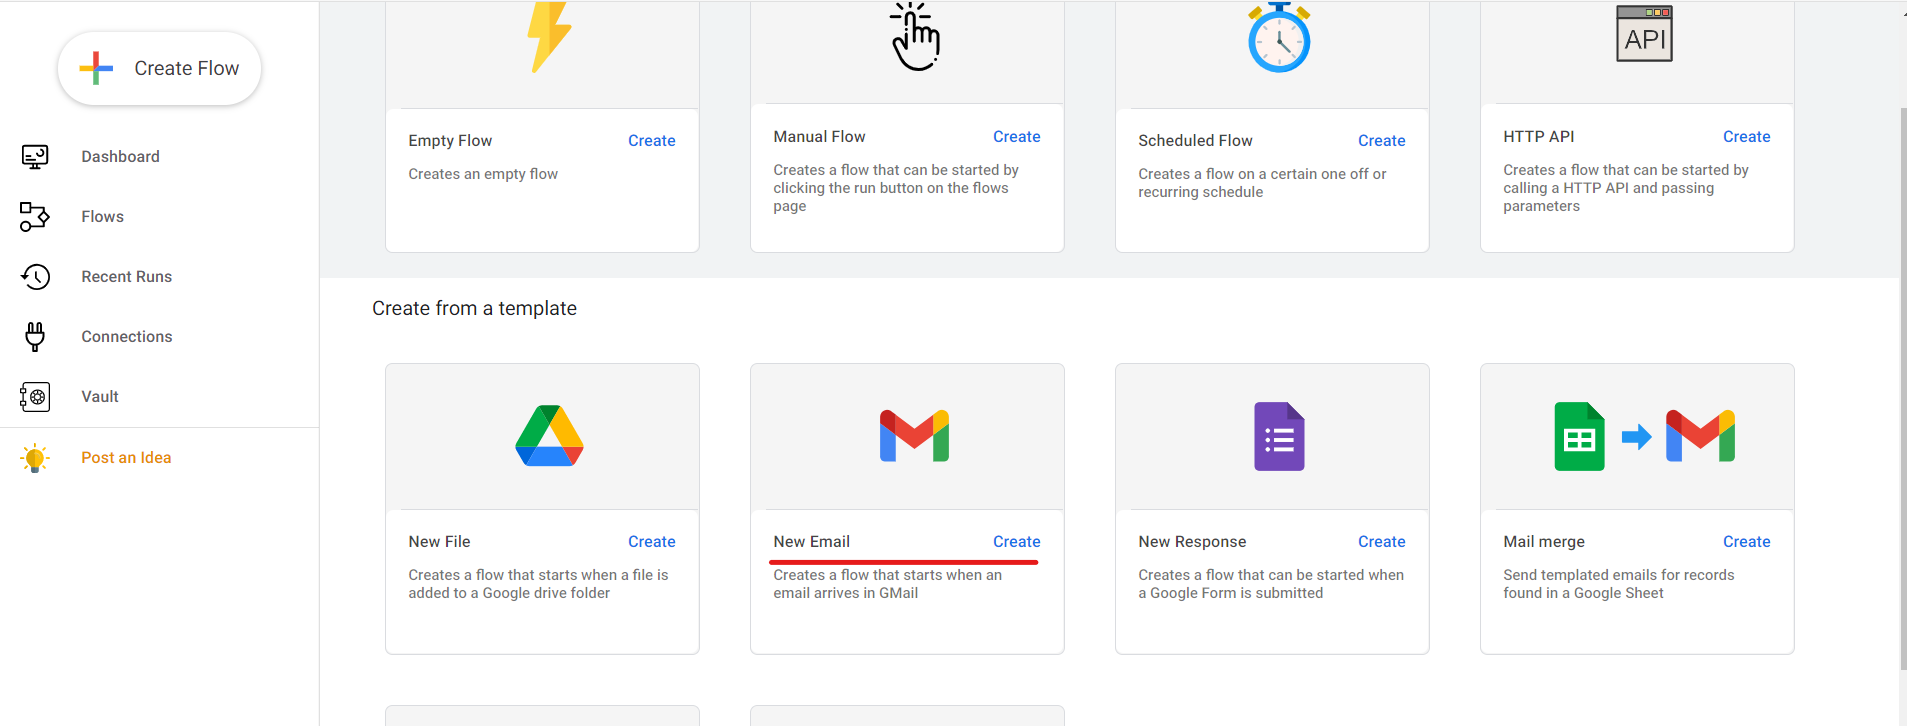 Gmail Workflow automation using zenphi Step# 02.